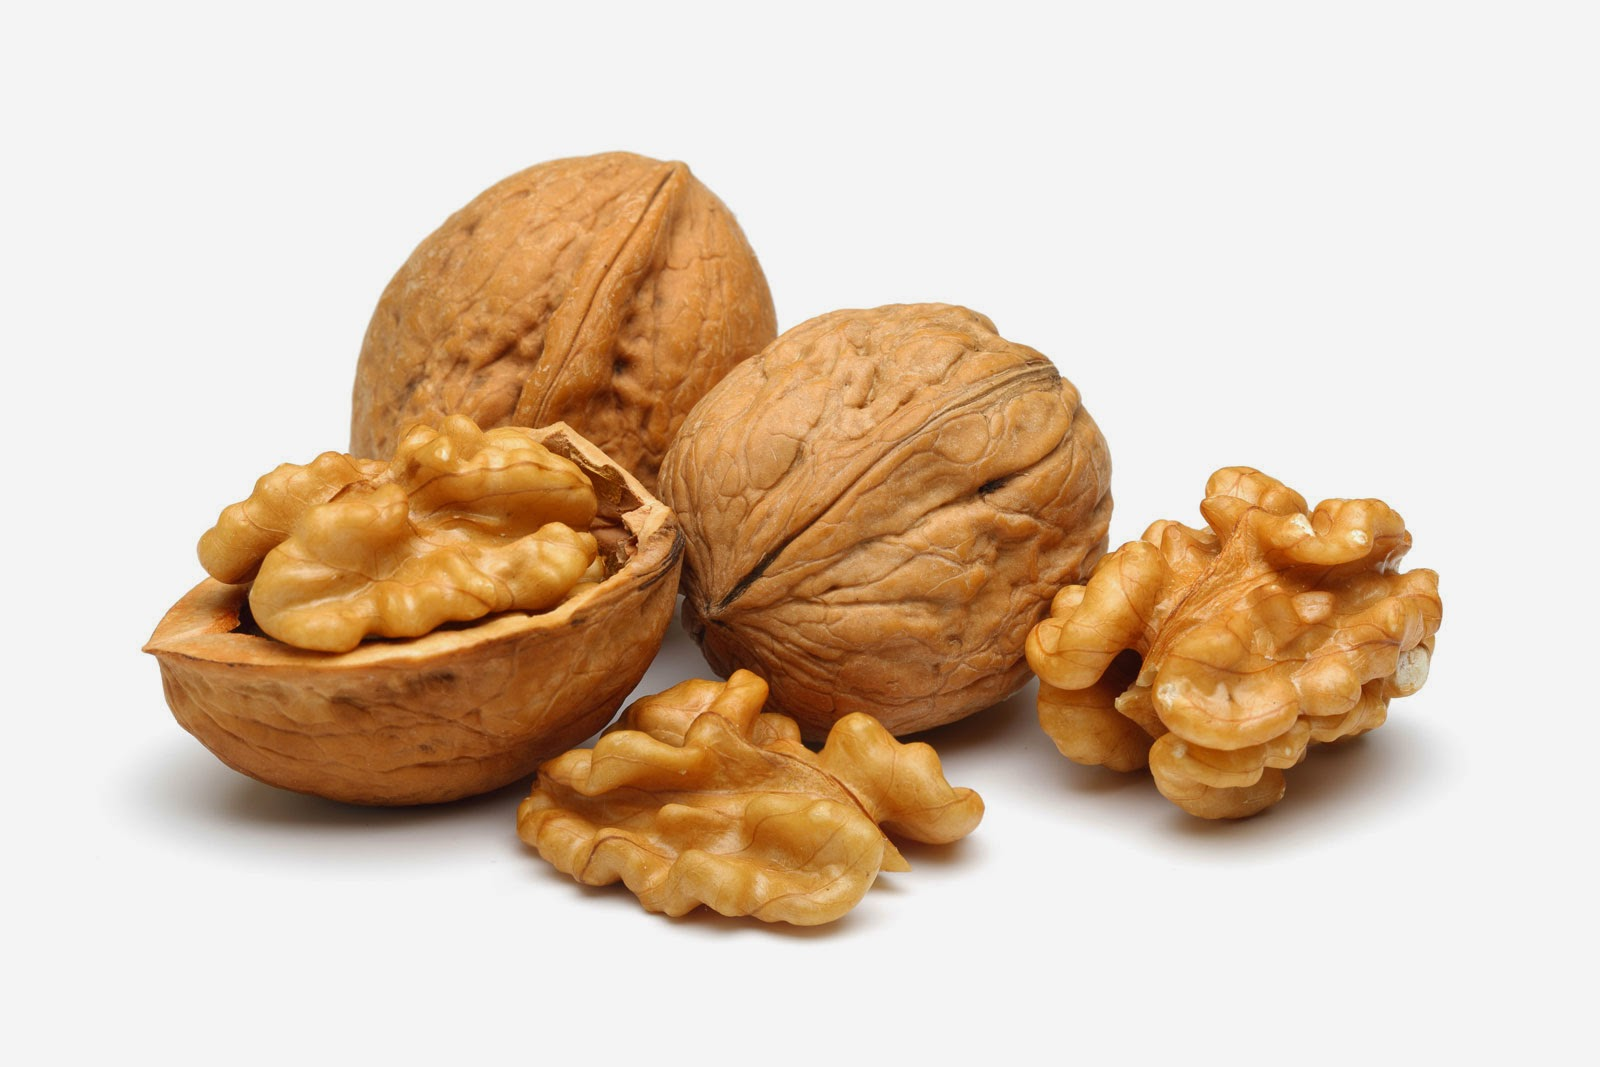 New Research Suggests Walnuts May Improve Memory